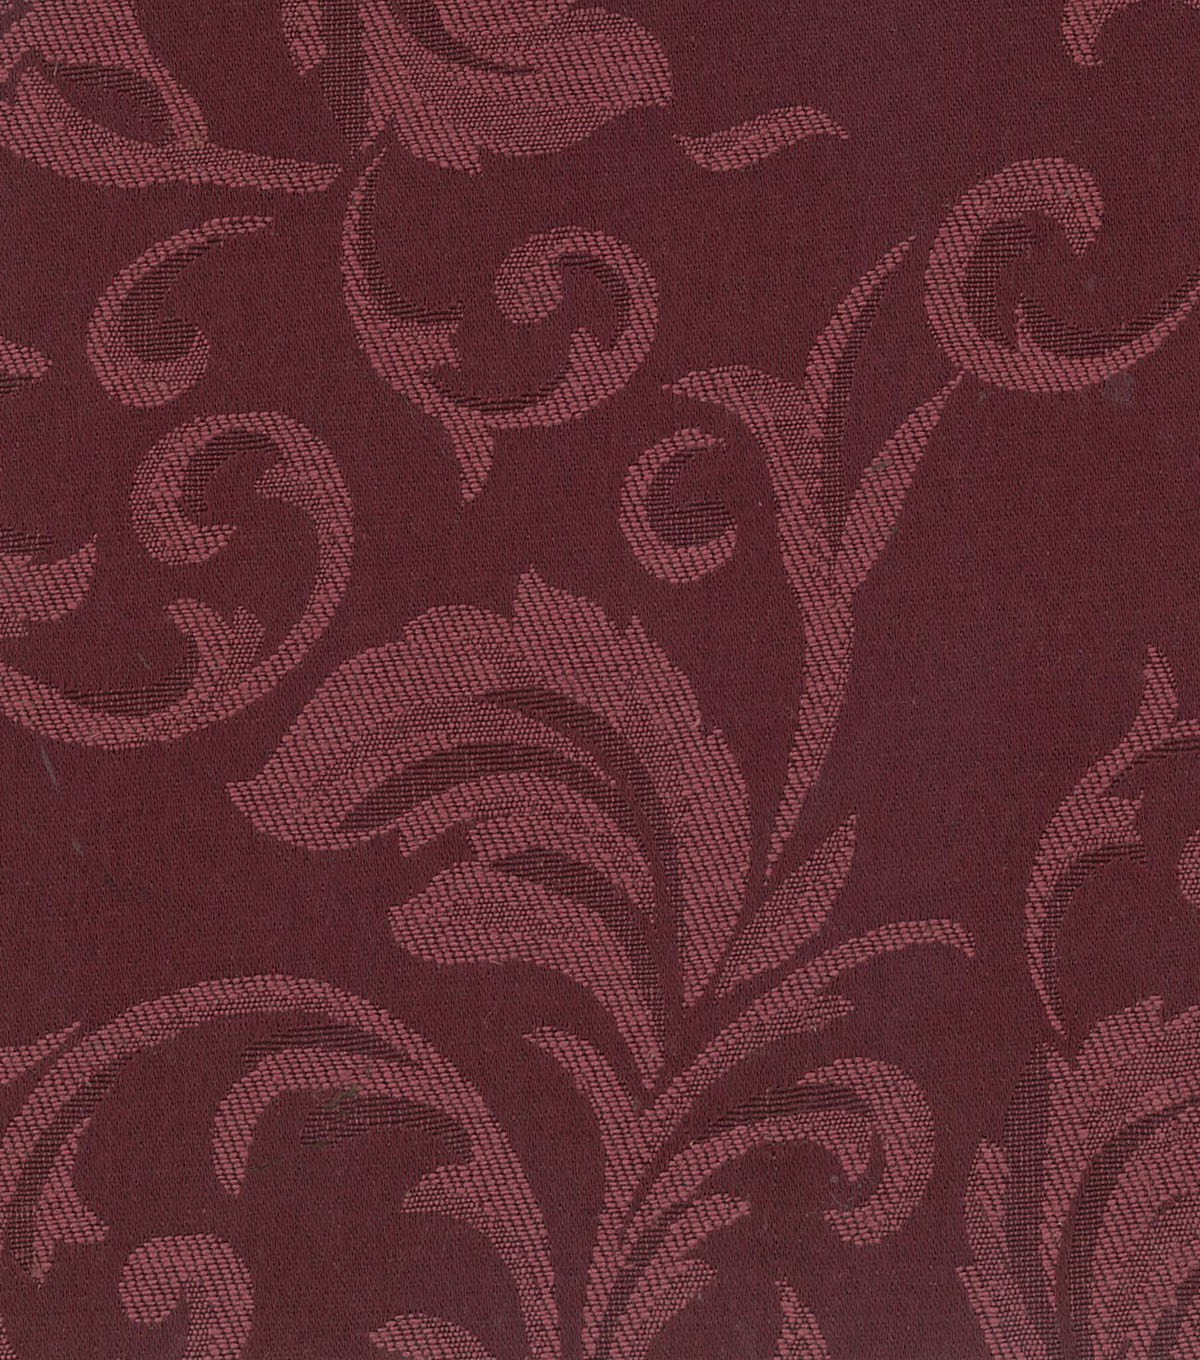 Signature Series Lightweight Decor Jacquard Fabric 54\u0022-Burgundy